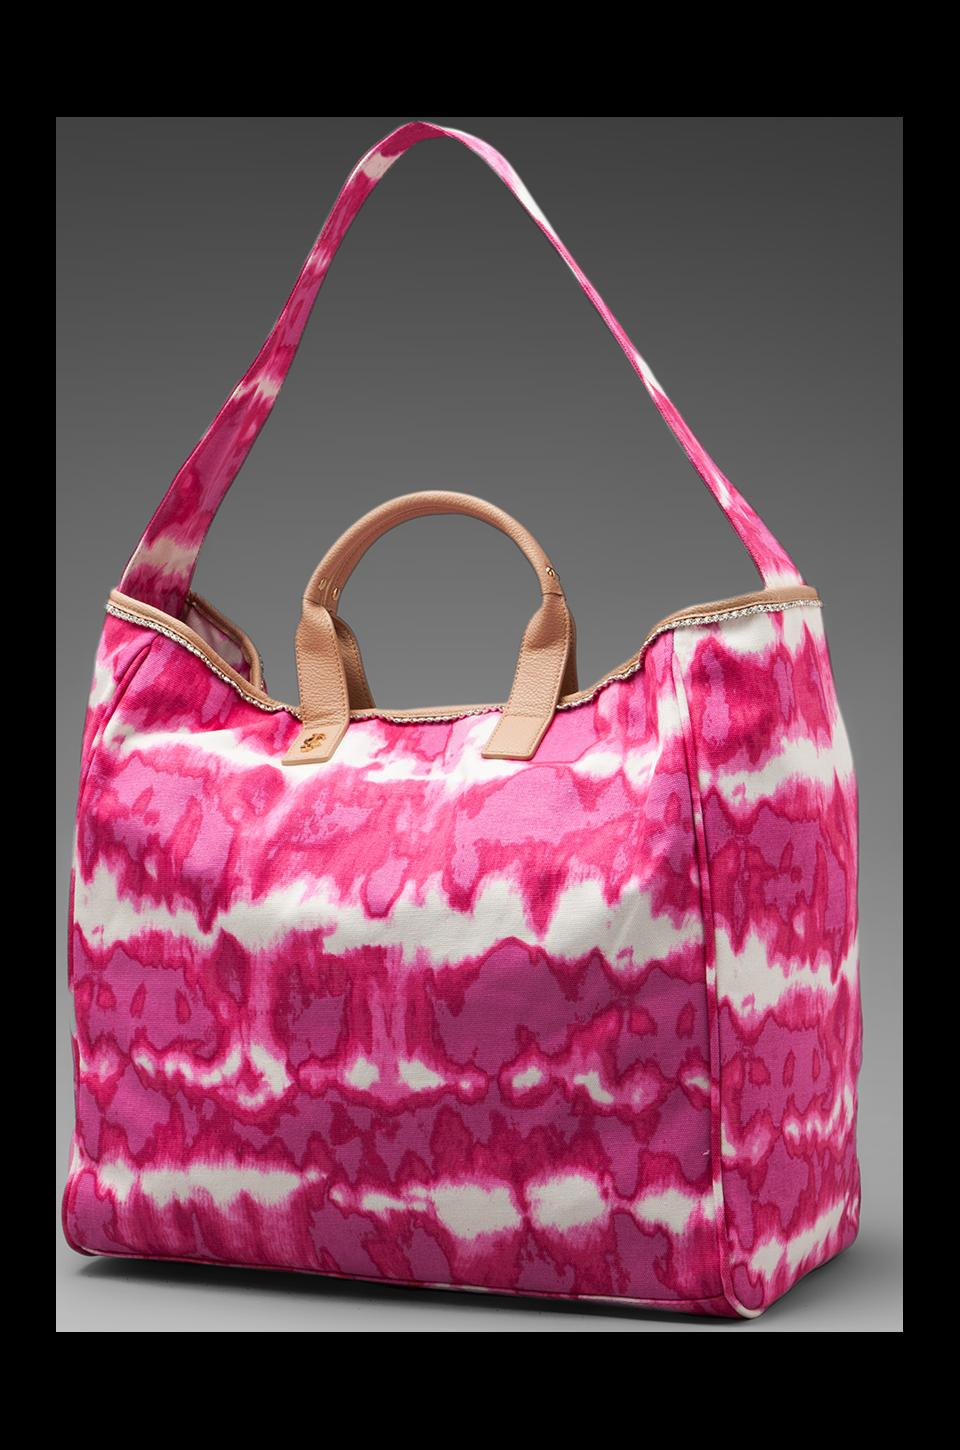 Juicy Couture Tie Dye Beach Tote in Dragonfruit